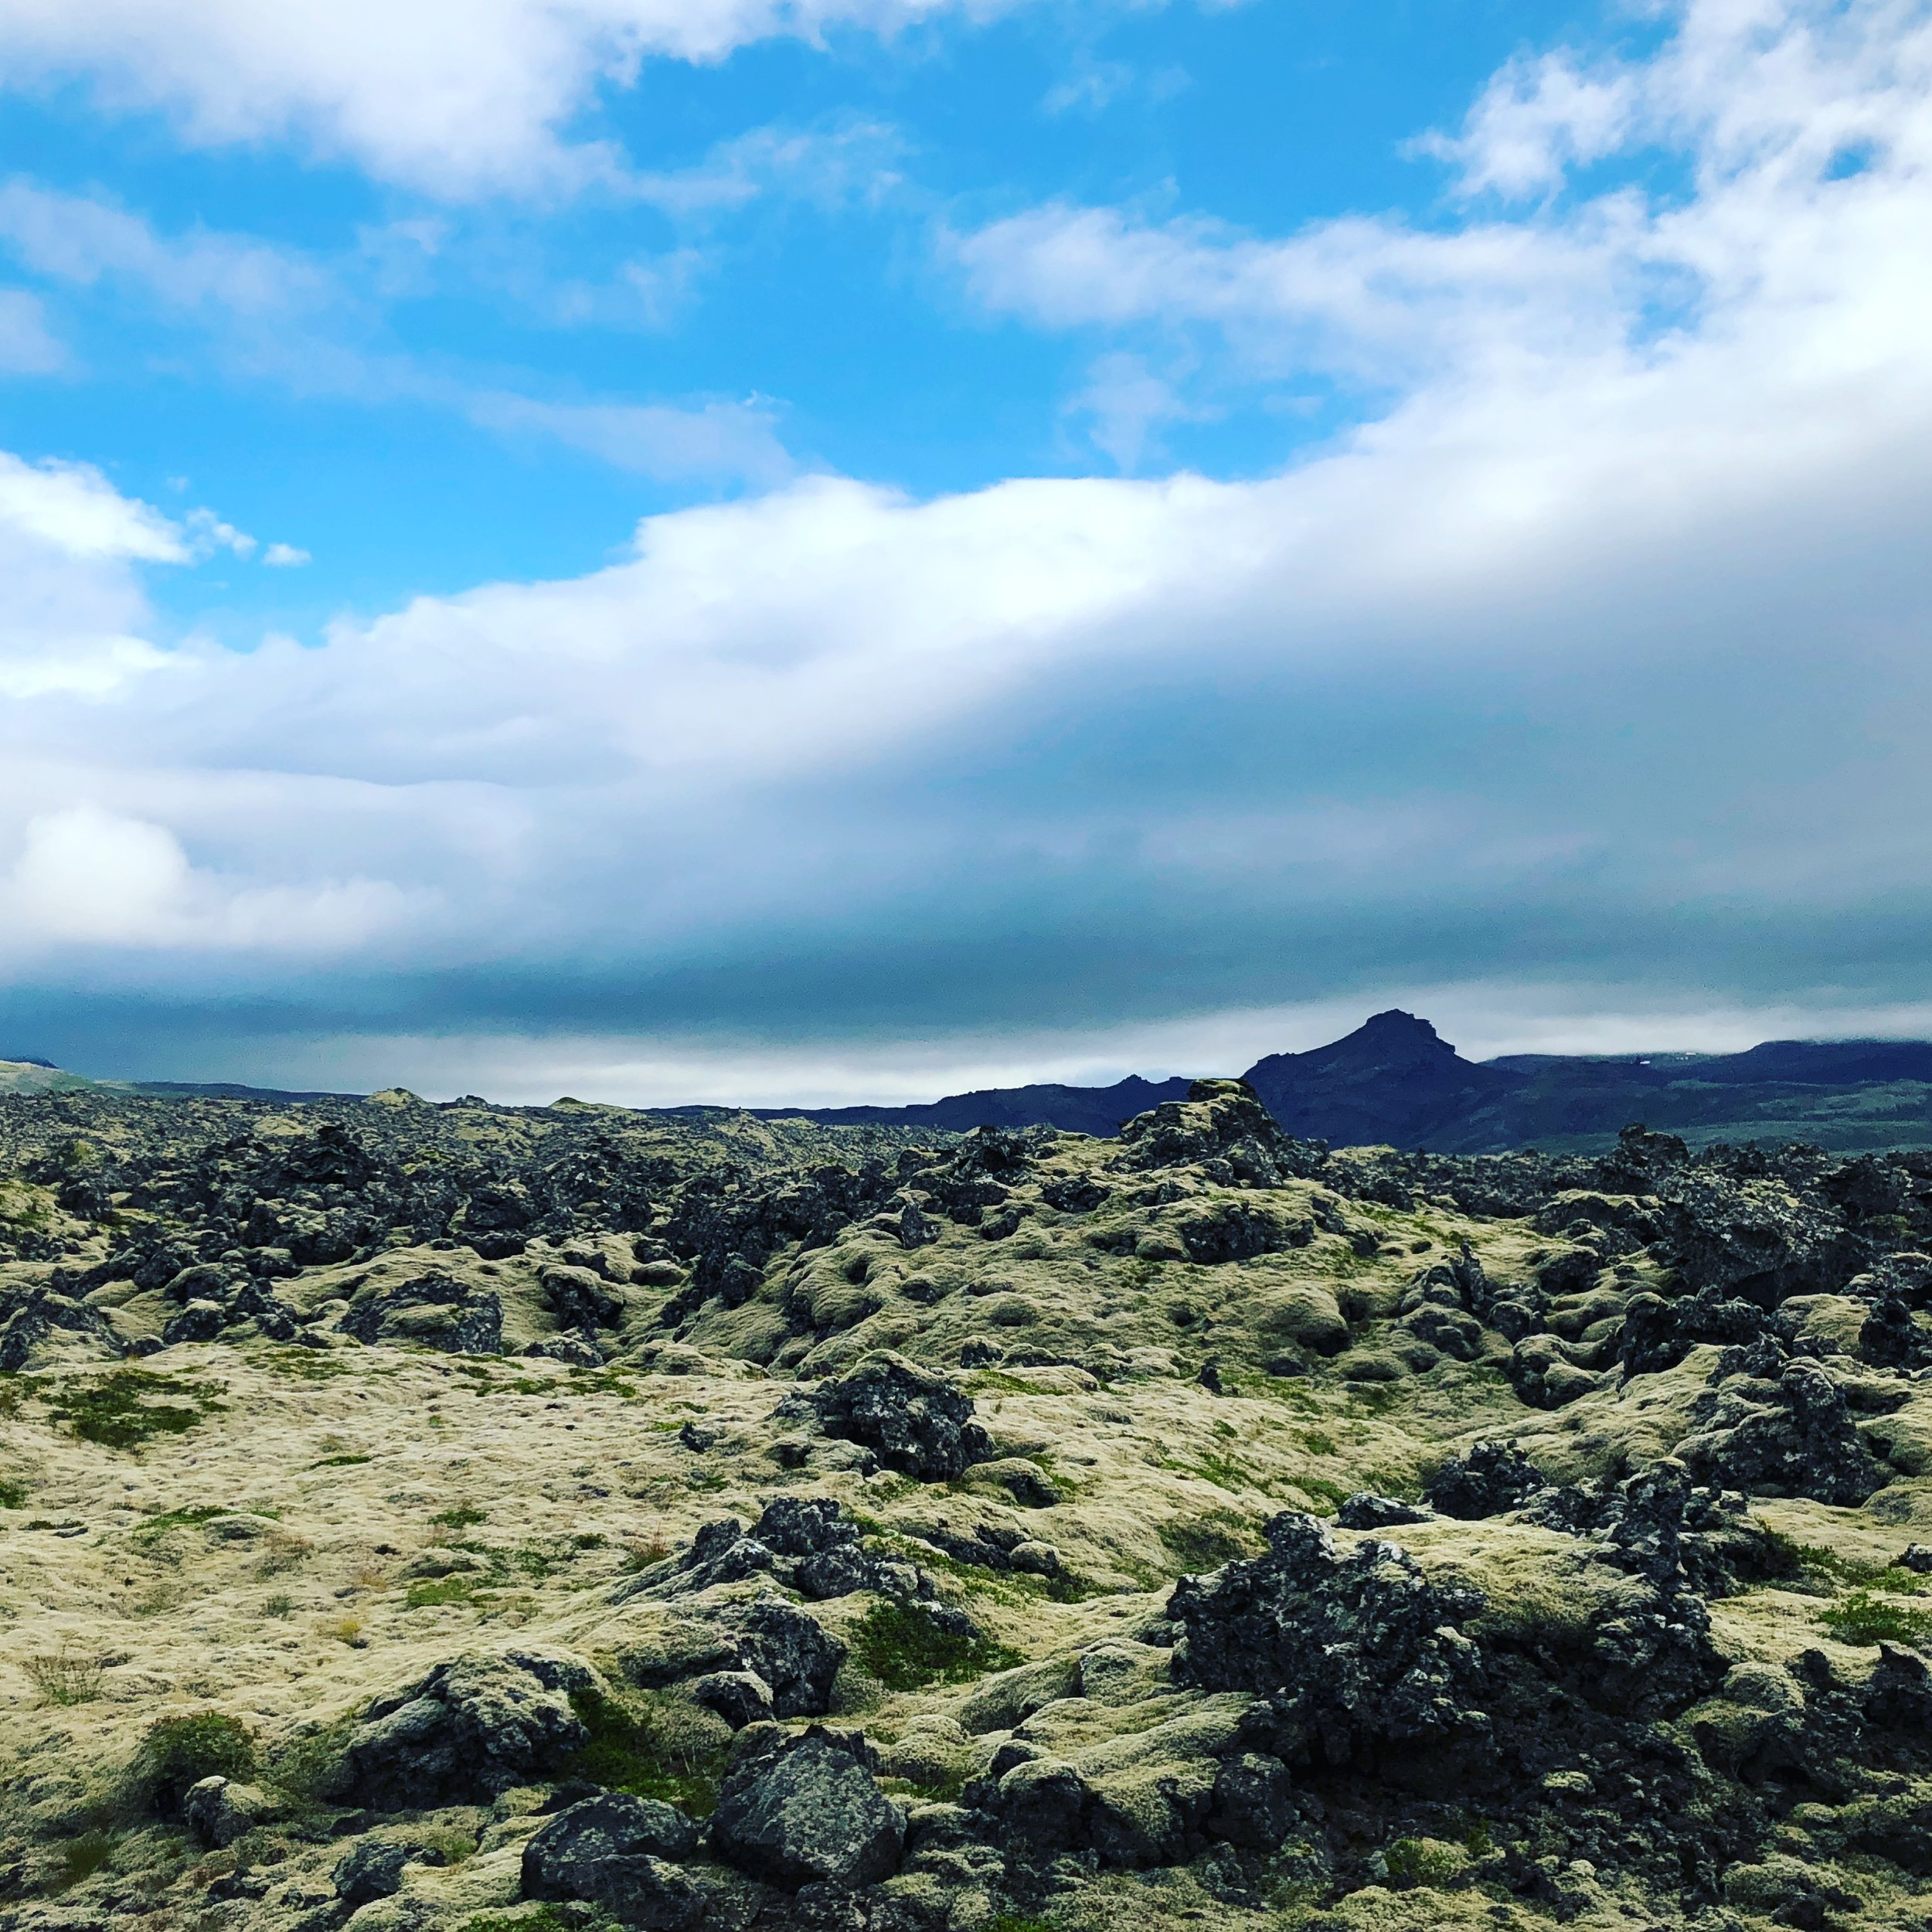 Somewhere in Iceland! Volcanic rocks and stuff!